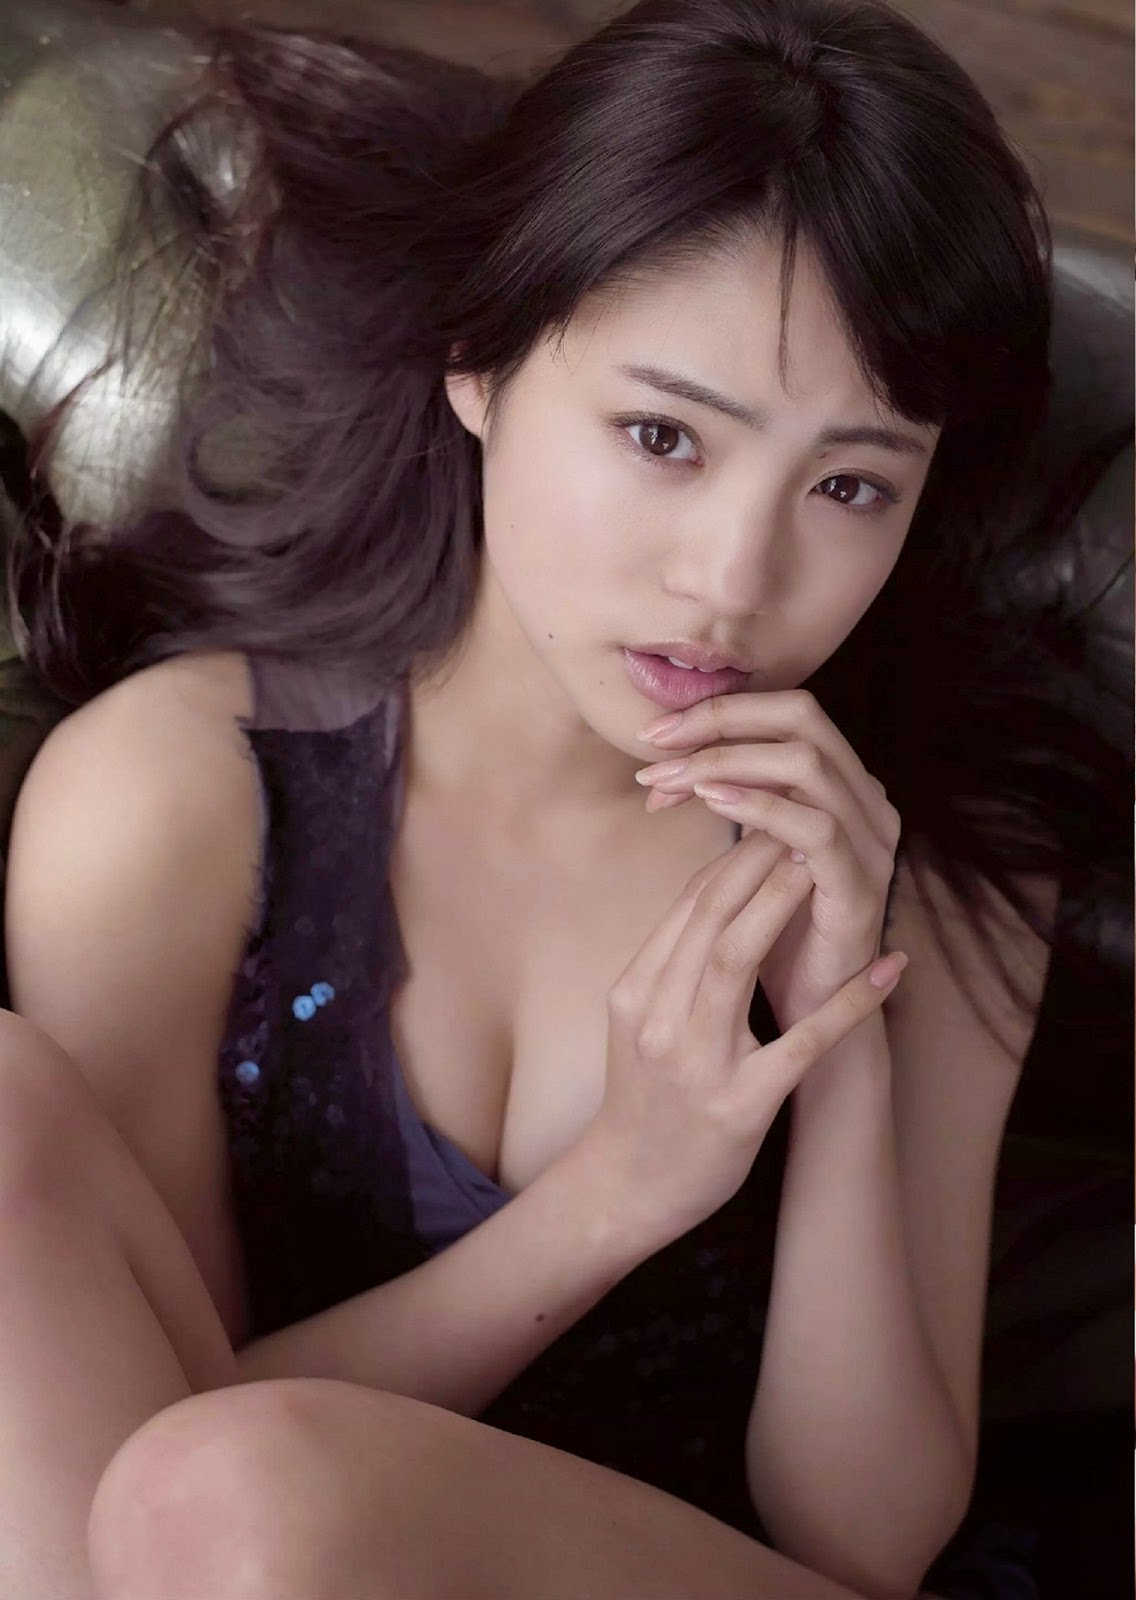 Shida Yuumi 志田友美 Weekly Playboy June 2014 Photos 4